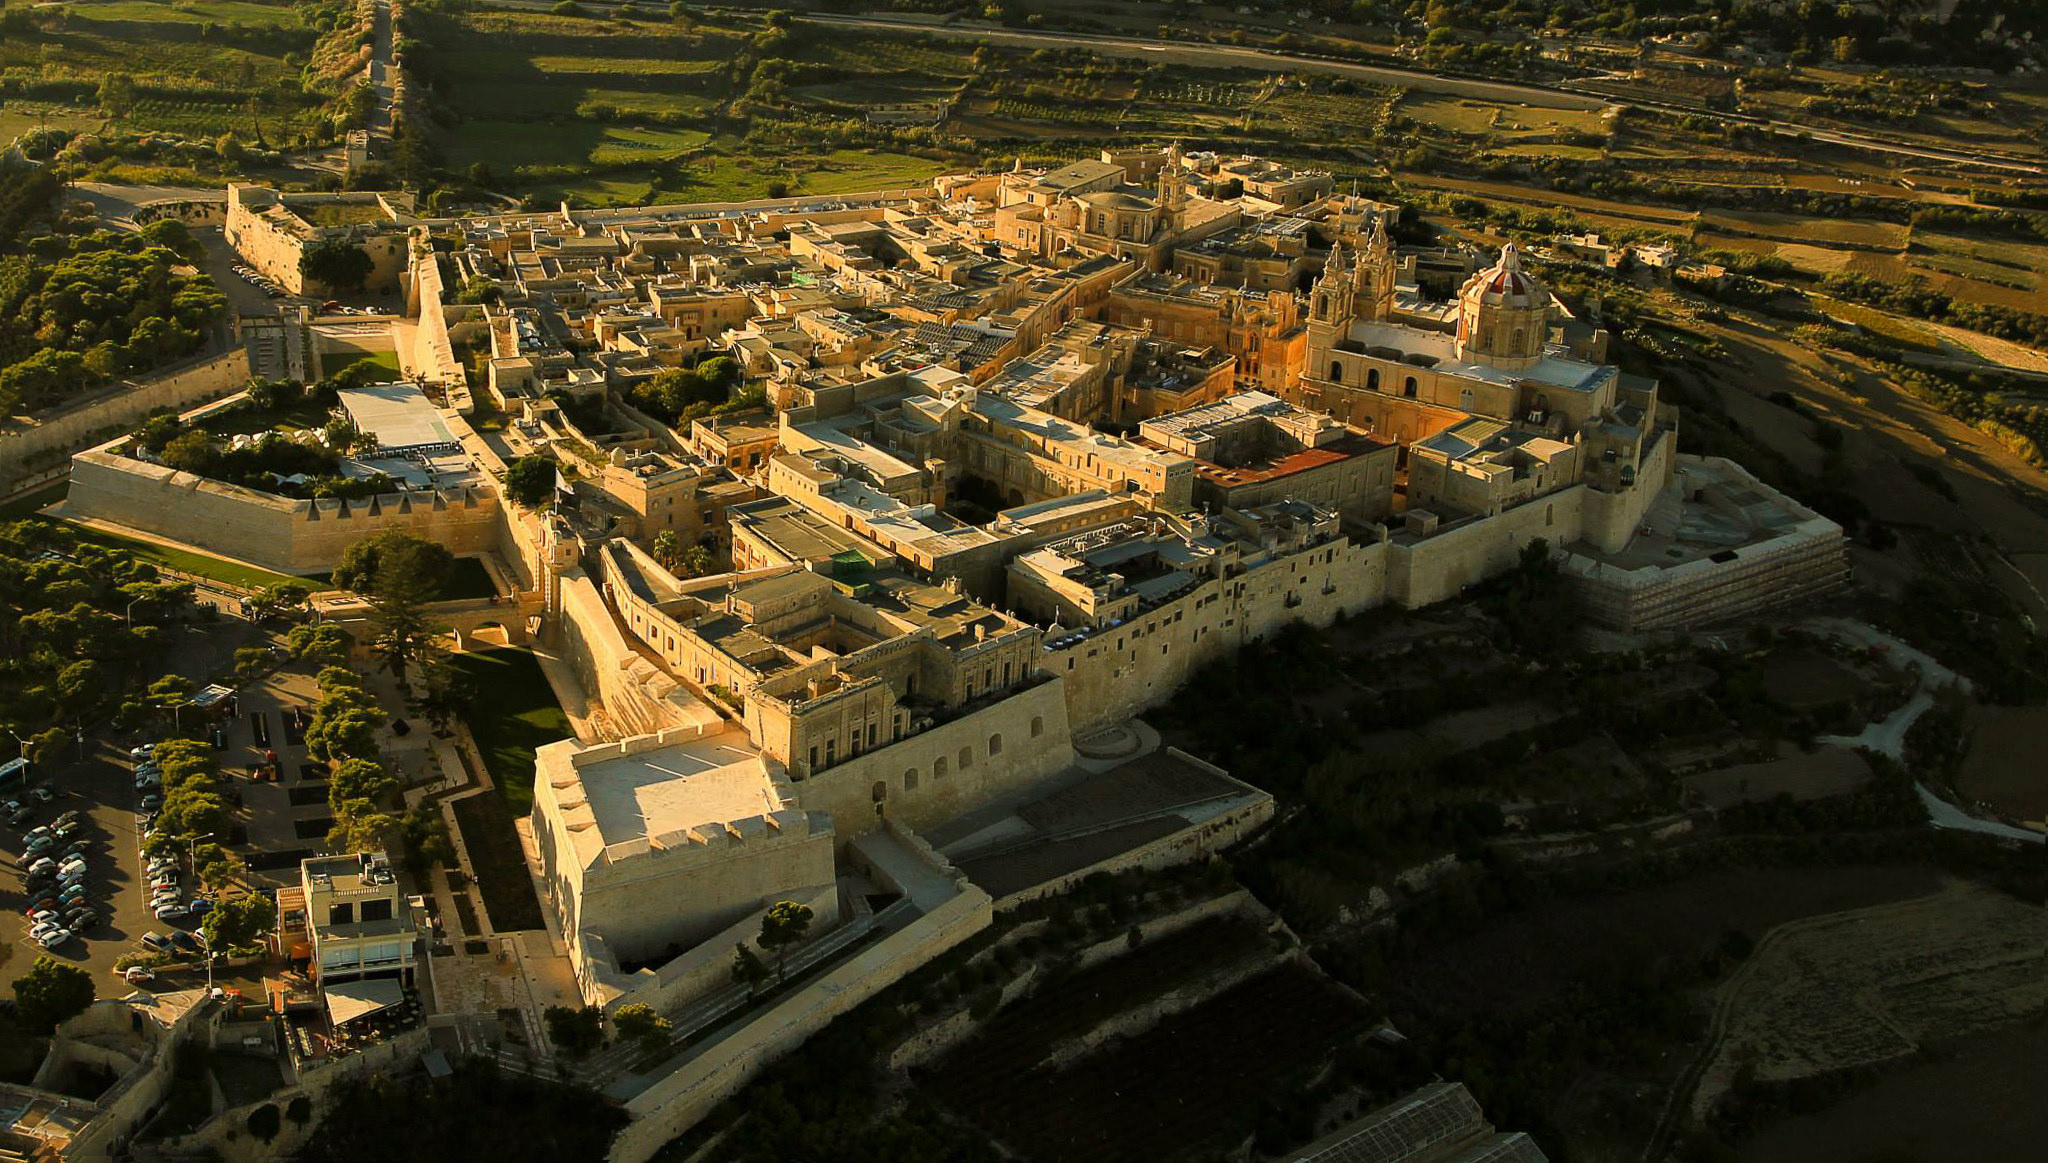 Areal view of Mdina